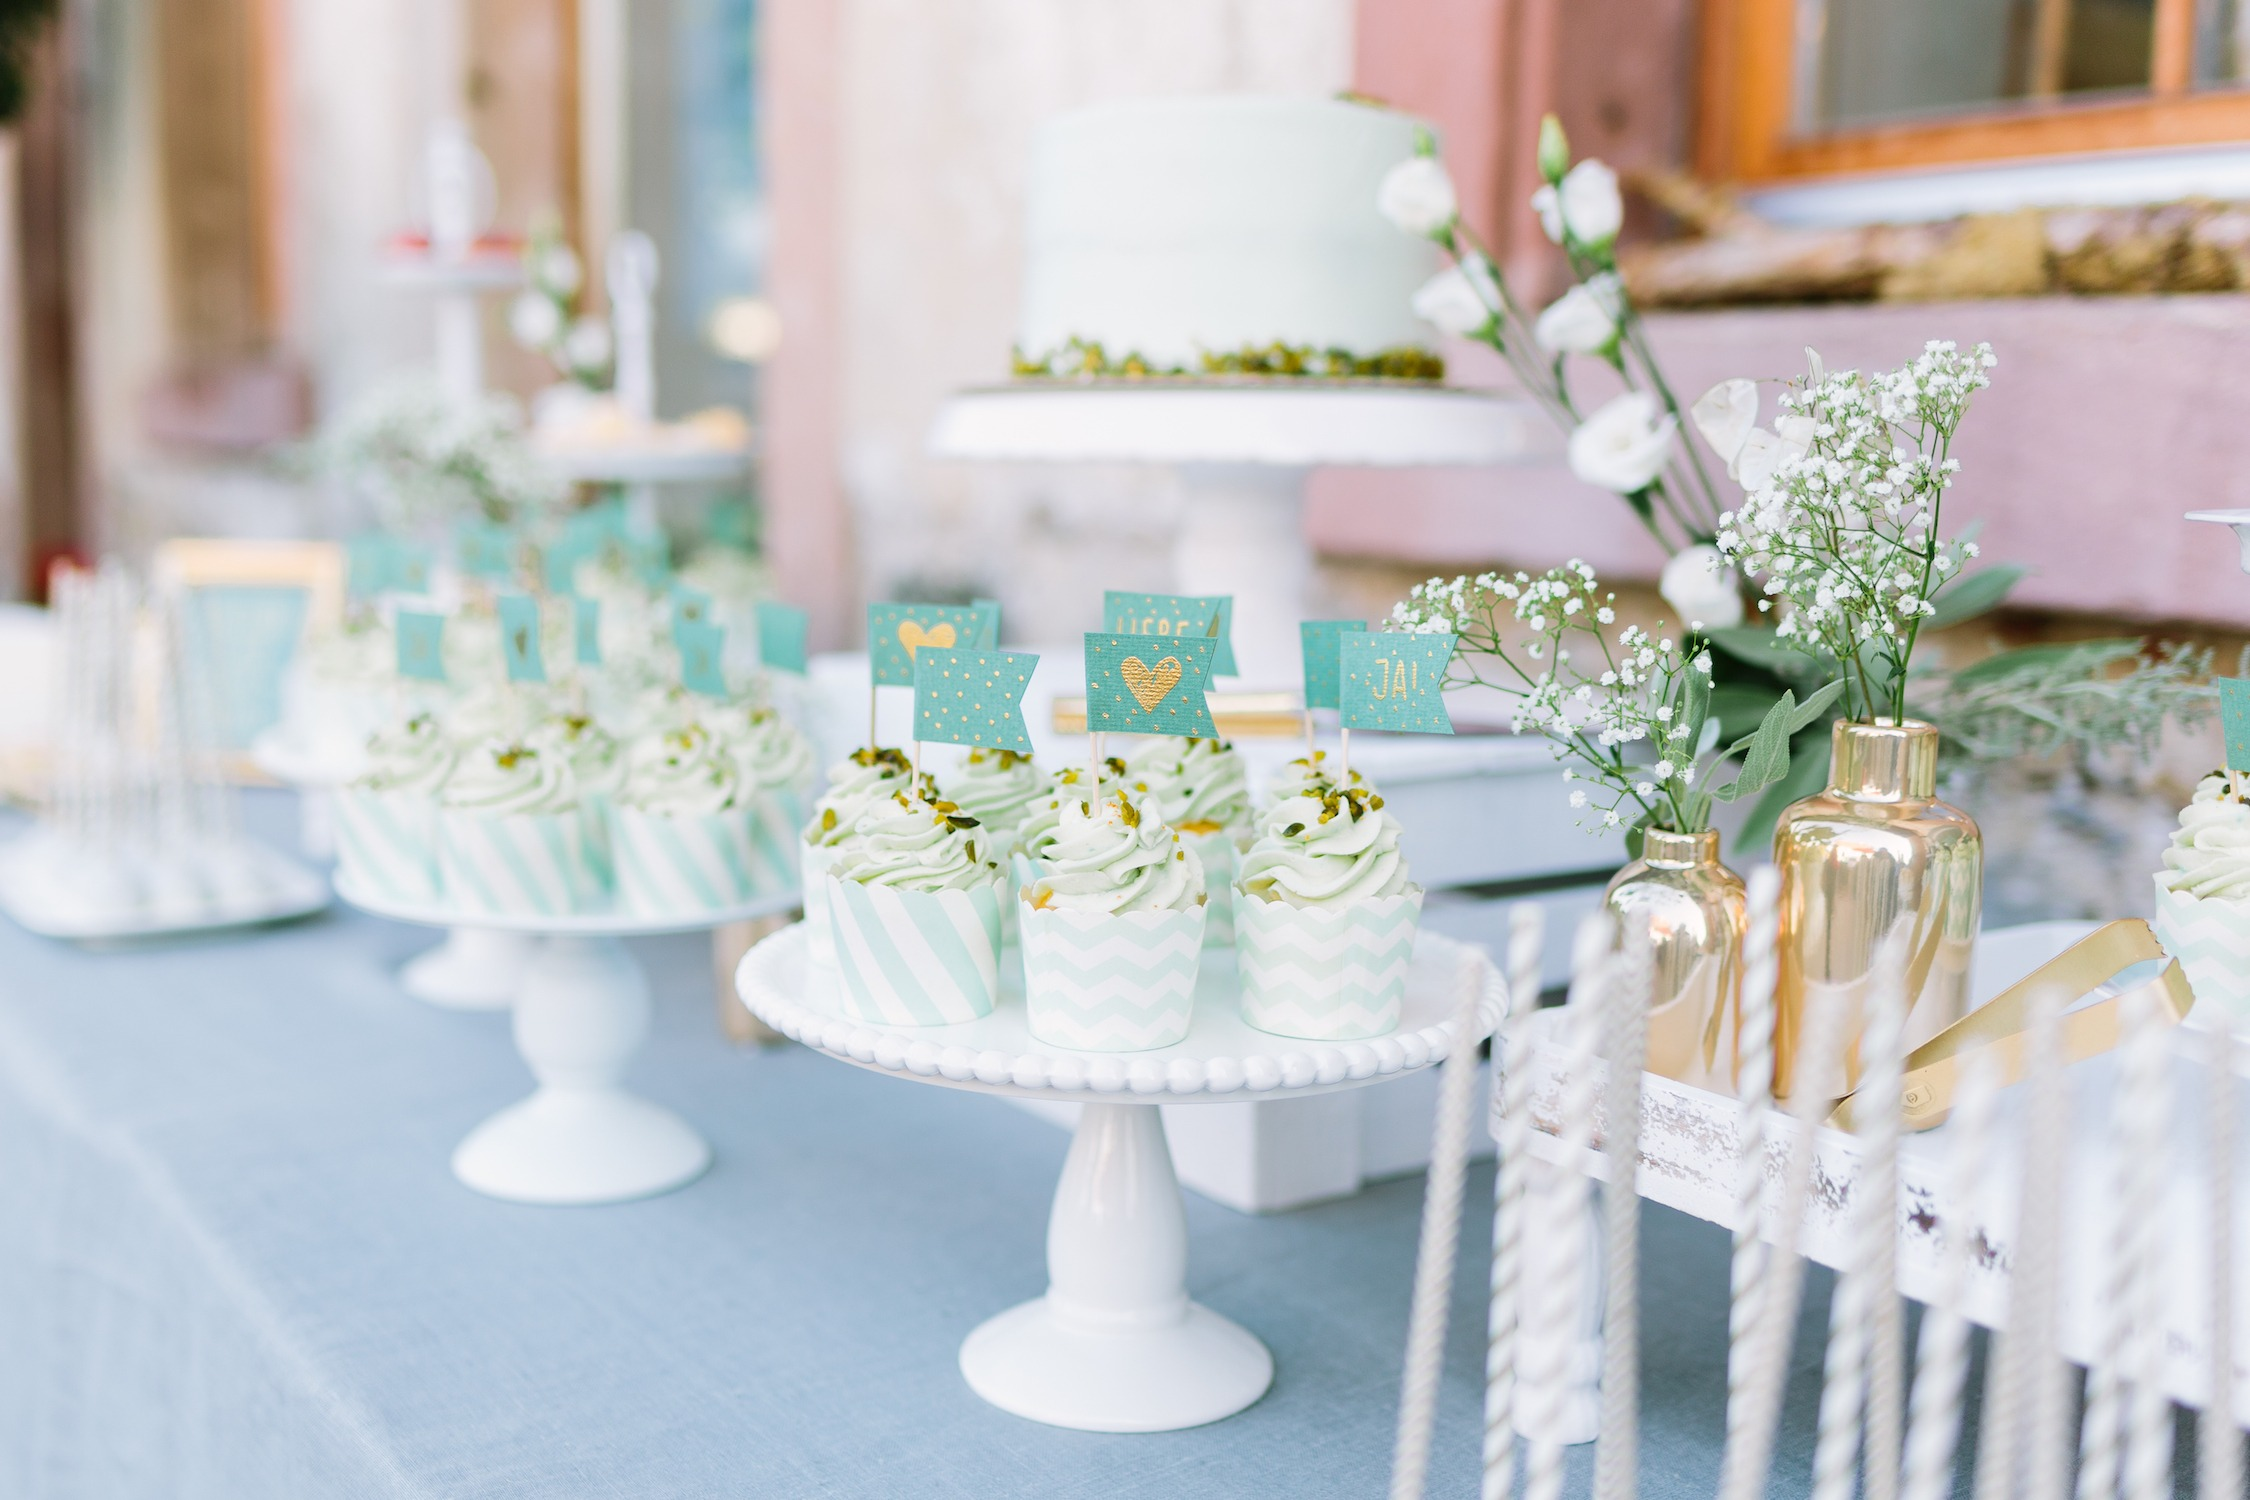 Sweet Table in weiss und mint (Foto: Le Hai Linh)